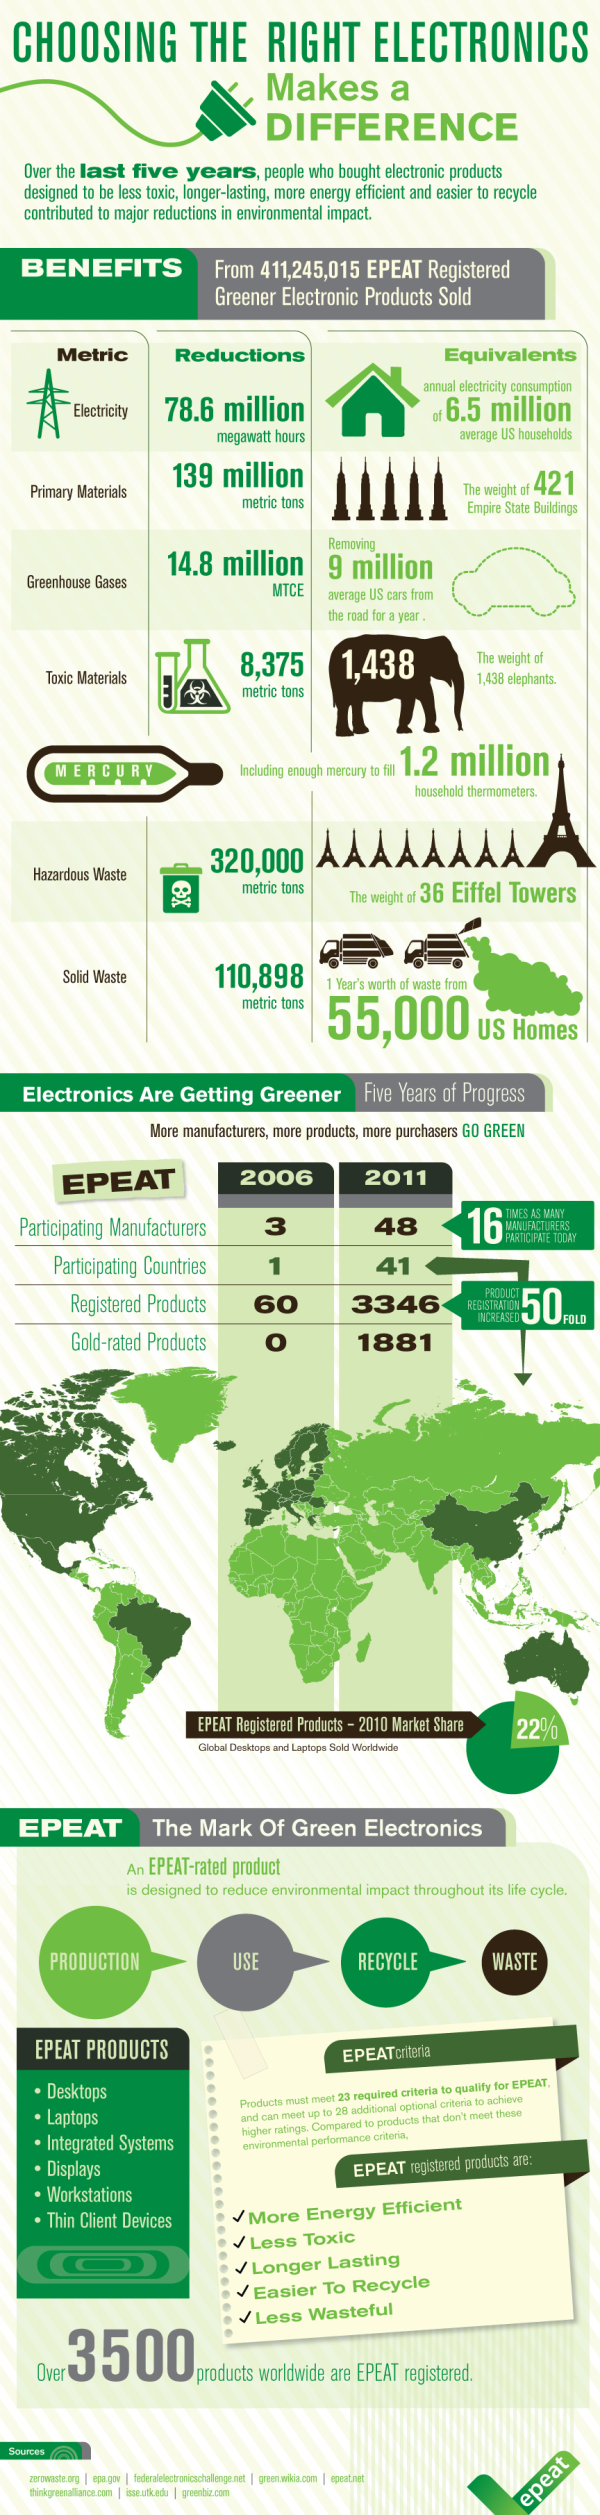 EPEAT Infographic